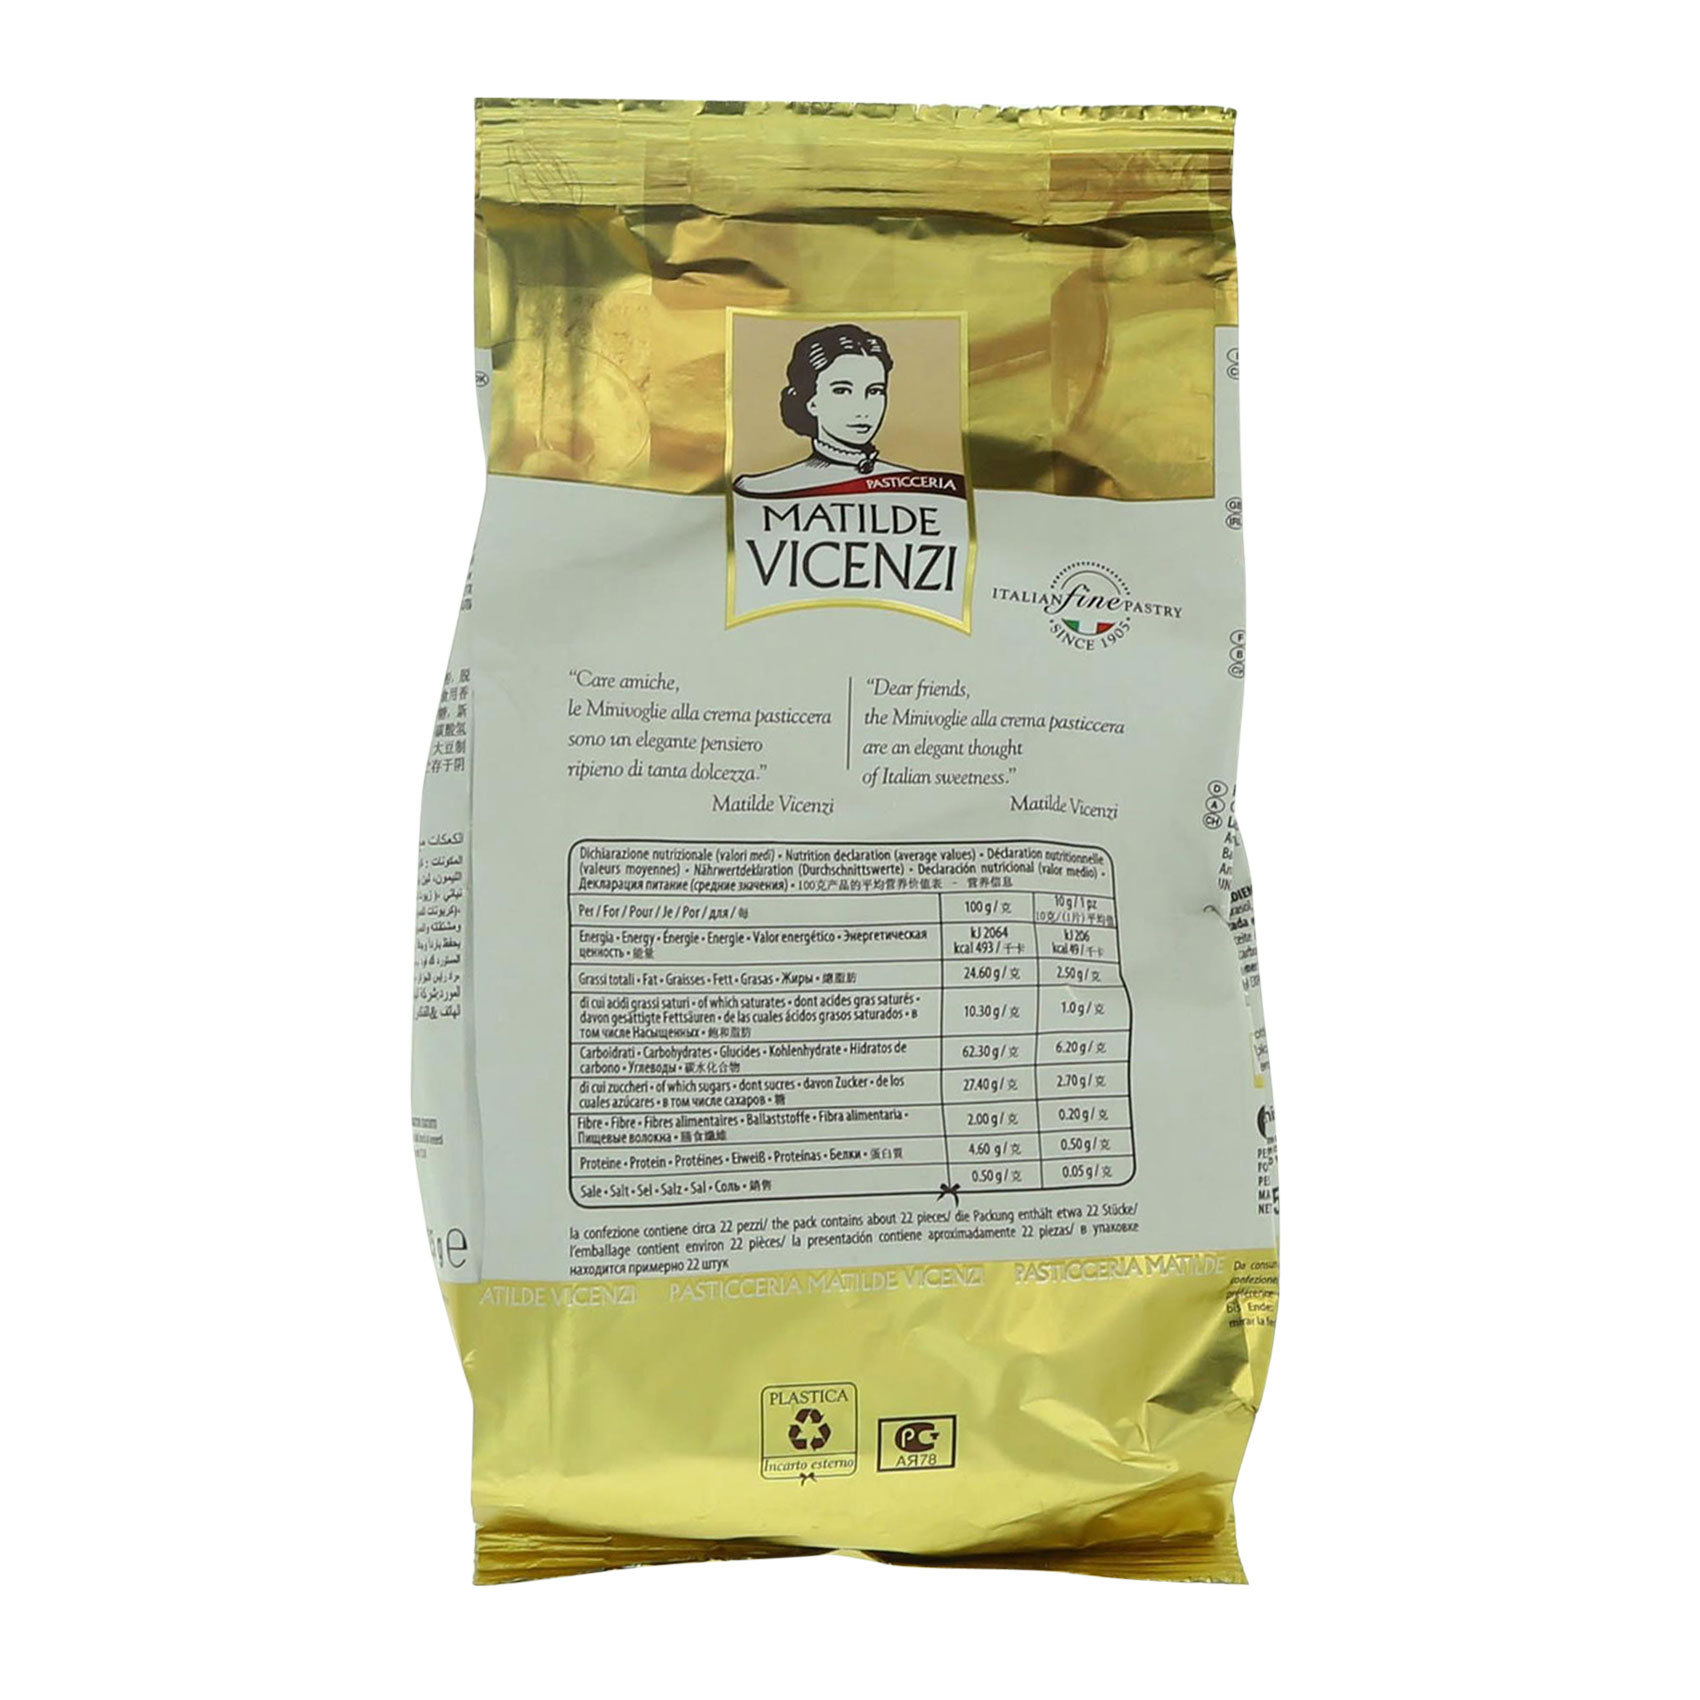 VICENZI MV PASTRY CRM COOKIES 225G